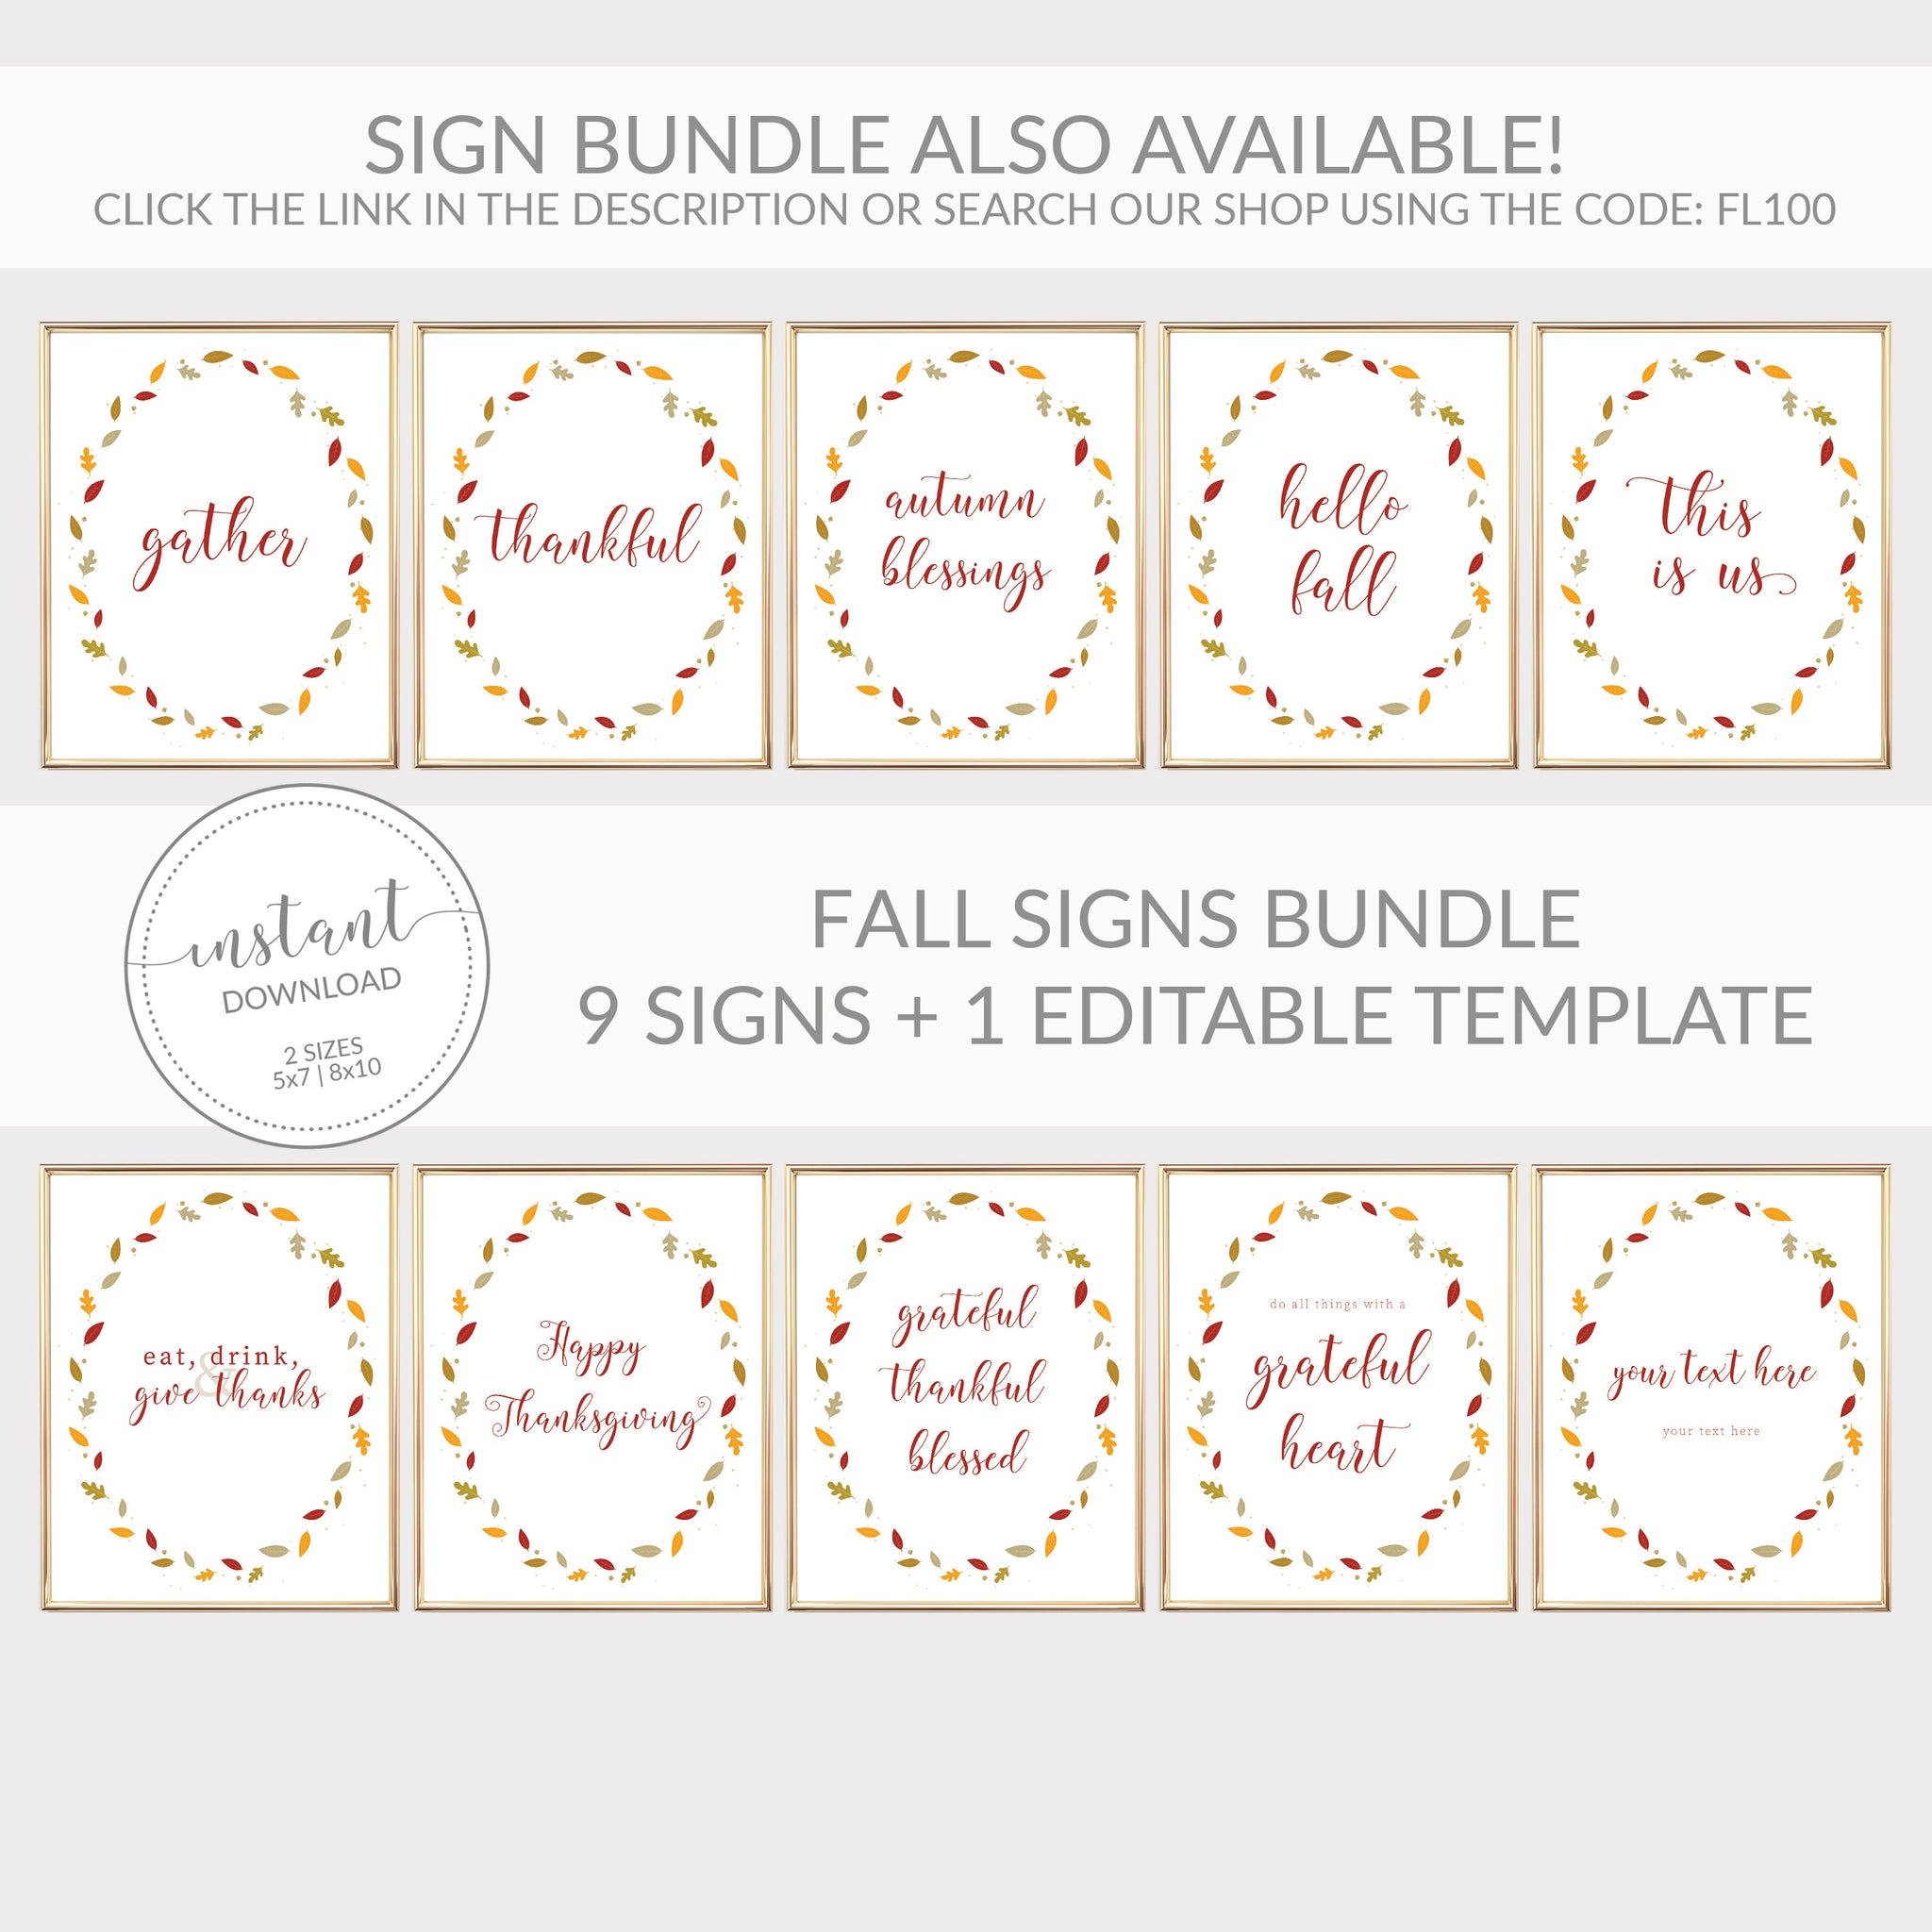 This is Us Sign Digital, Fall Family Sign, Fall Decorations for Home, Autumn Decor for Home, Fall Printable, INSTANT DOWNLOAD - FL100 - @PlumPolkaDot